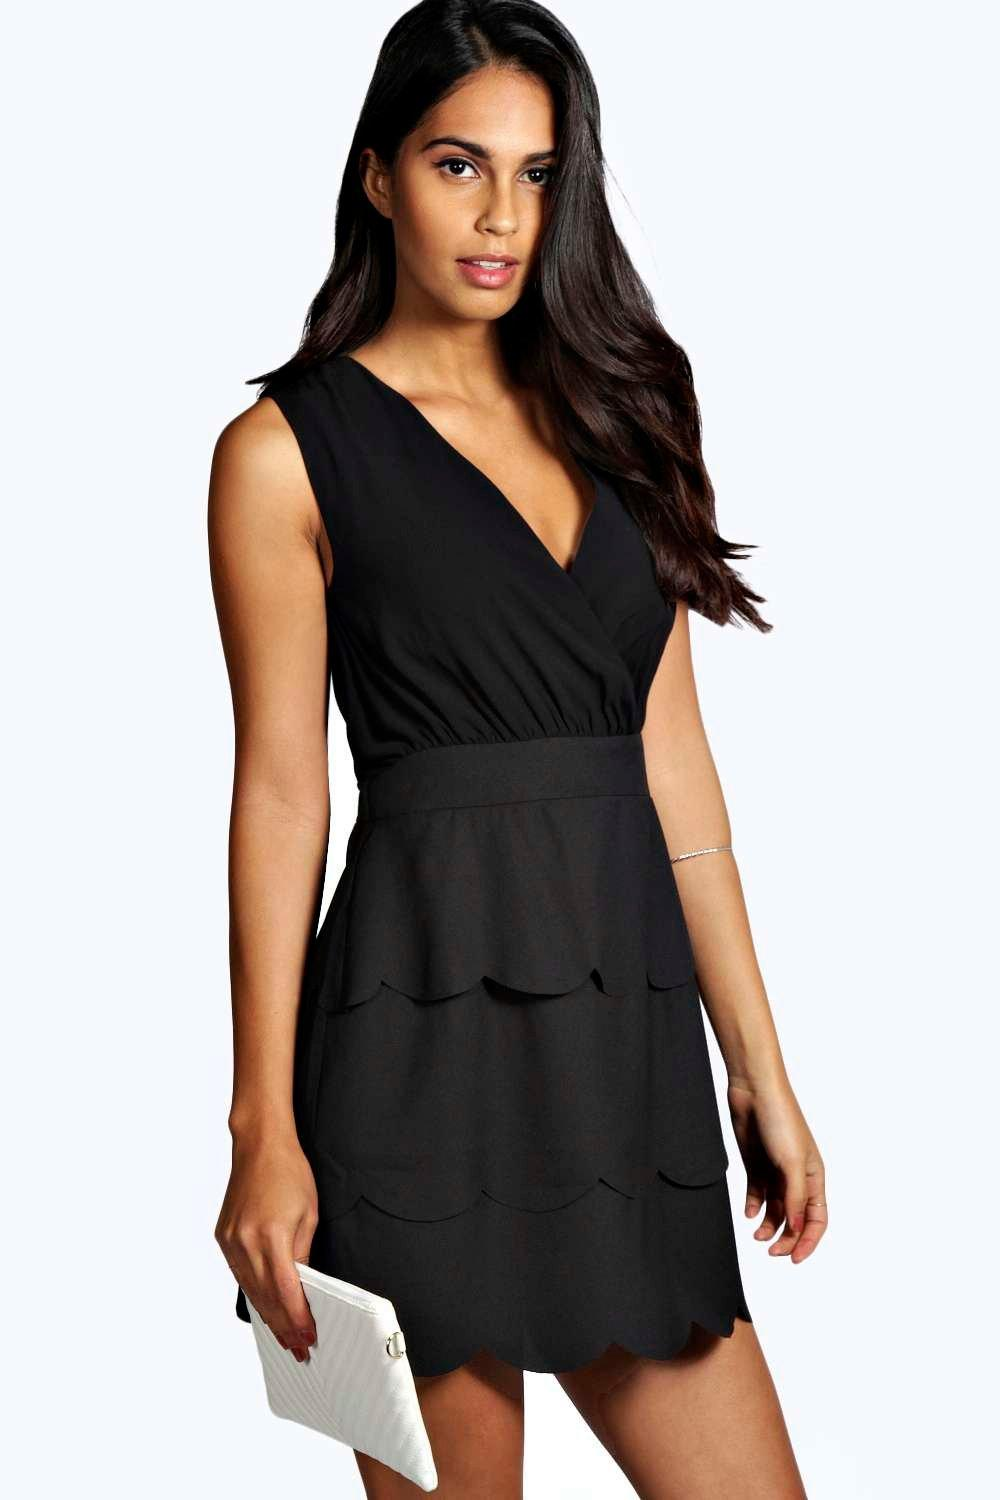 Brilliant More Heaton Clothing U2013 Casual Party Dress For Women Over 40 50 60